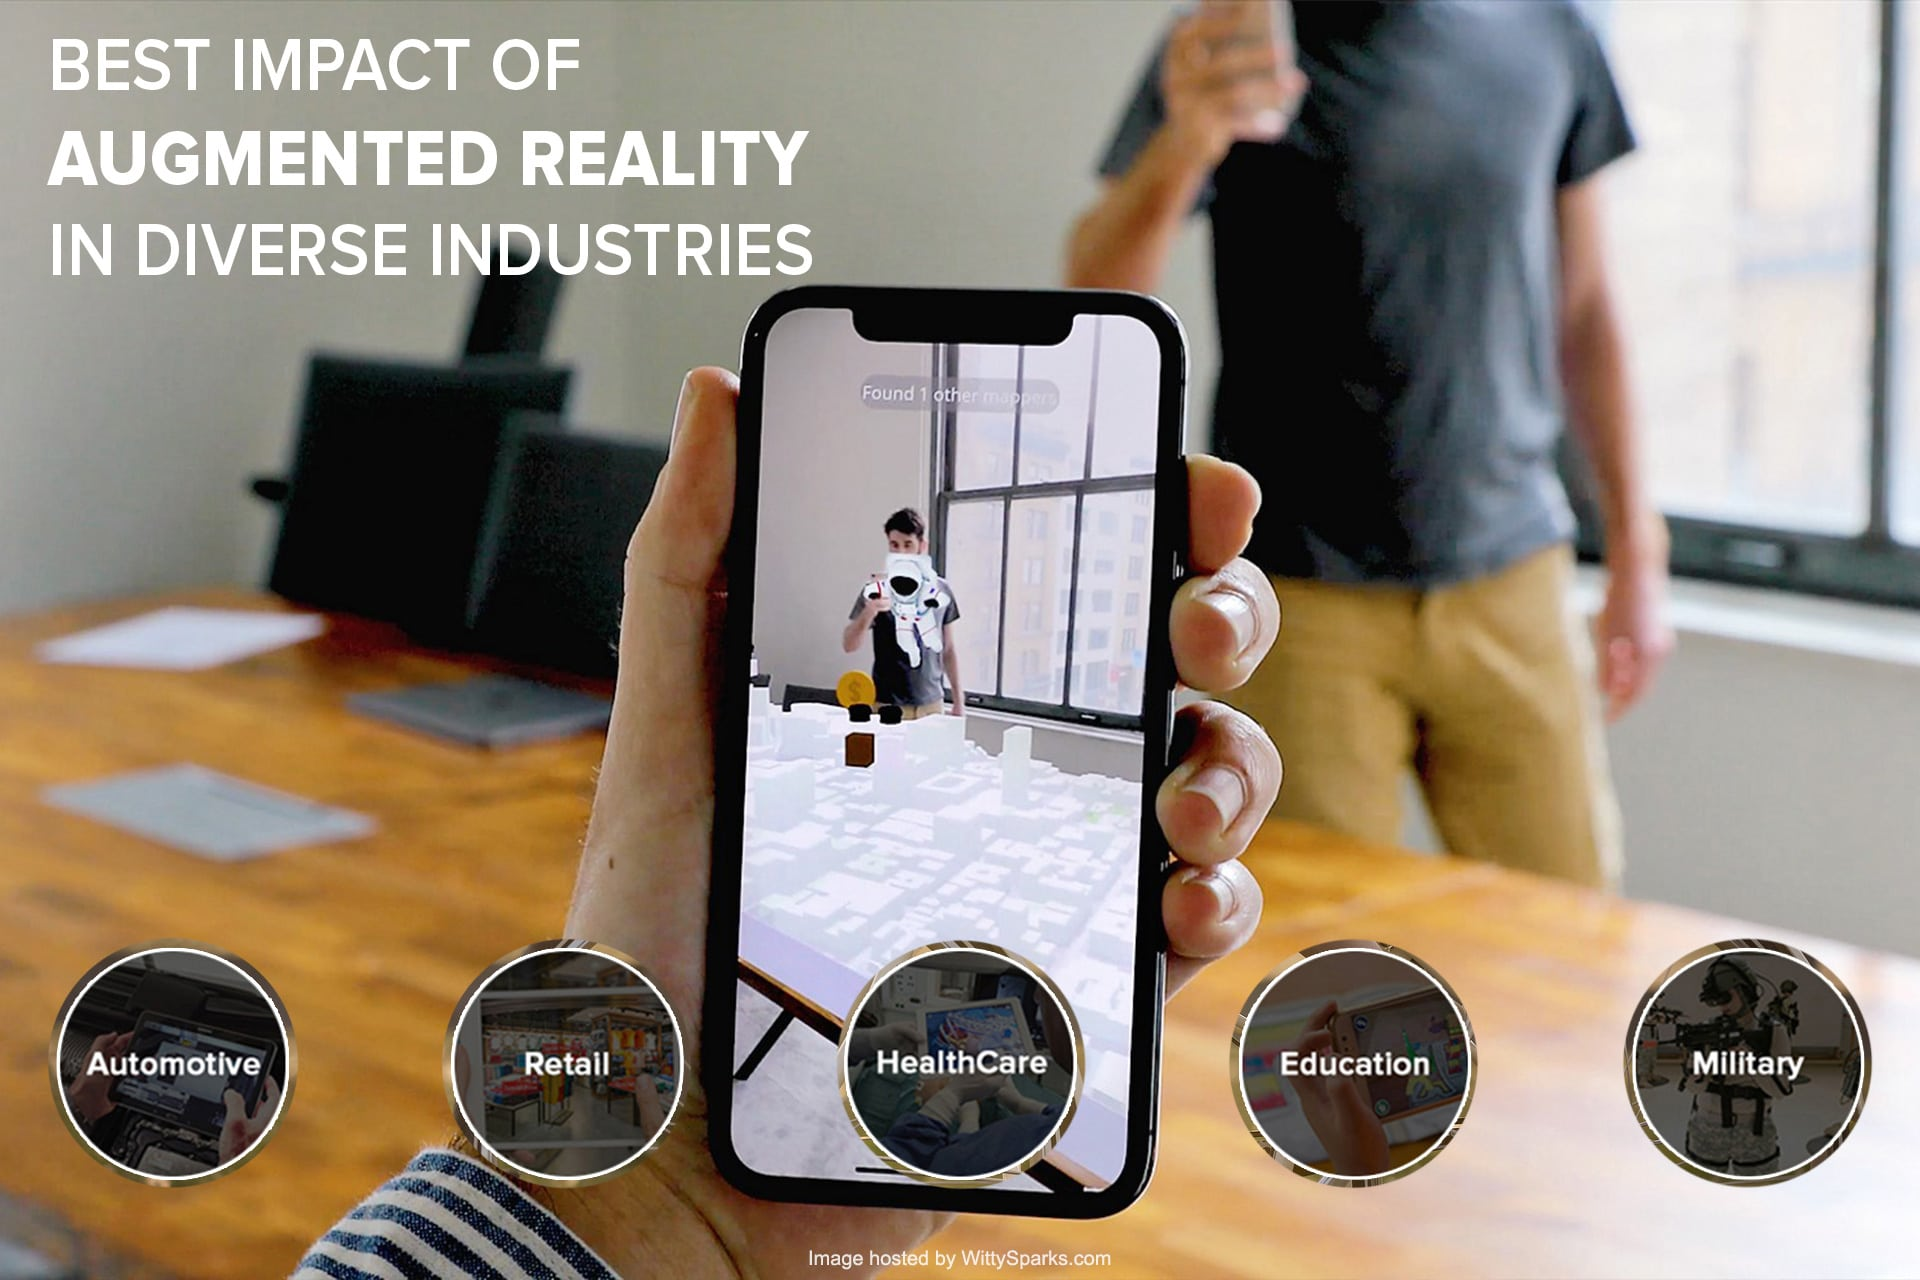 Best Impact of Augmented Reality In Diverse Industries